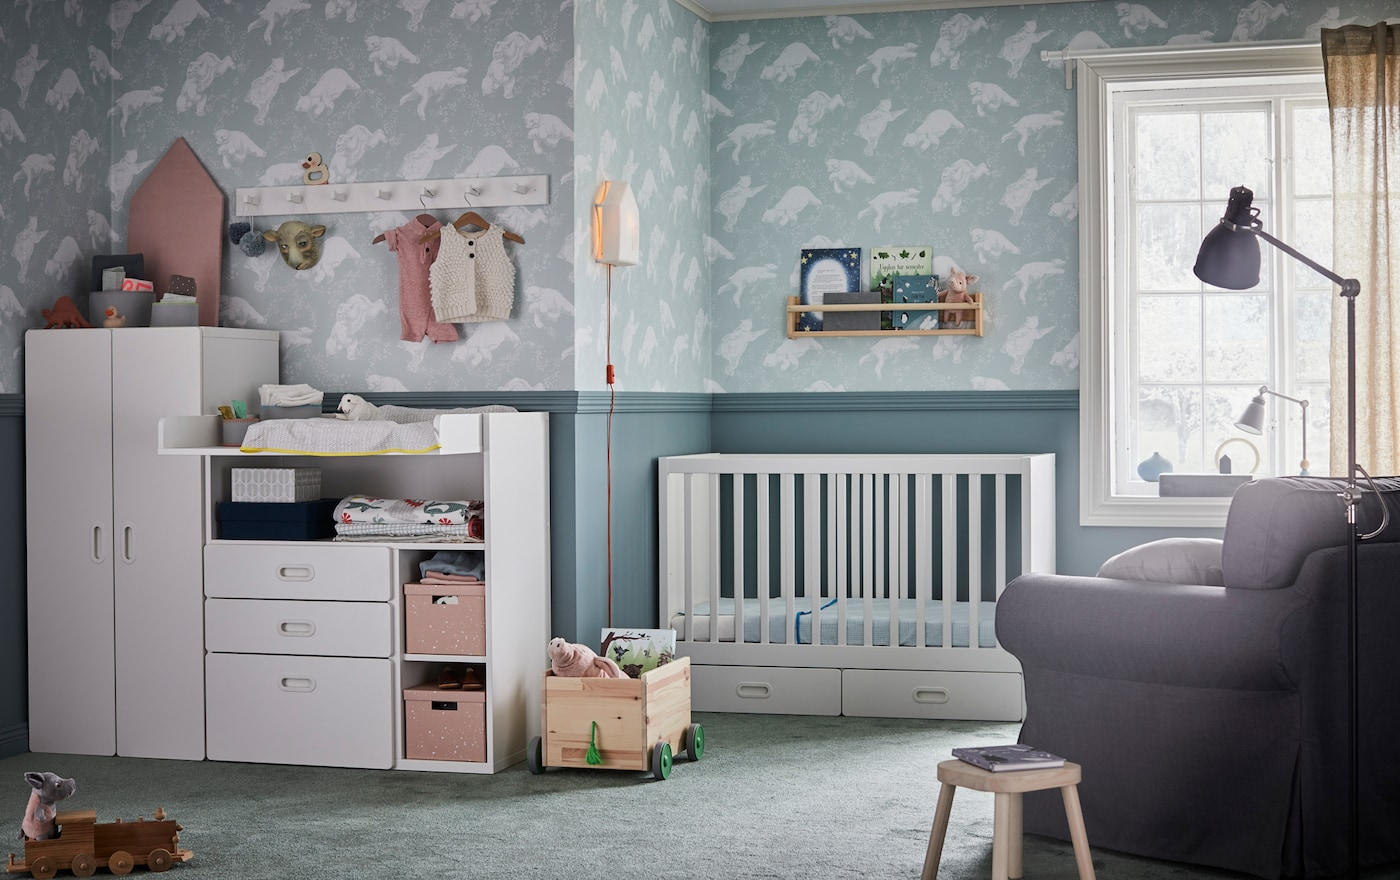 IKEA EKTORP large grey armchair with grey LEN nursing pillow in a nursery roomset.